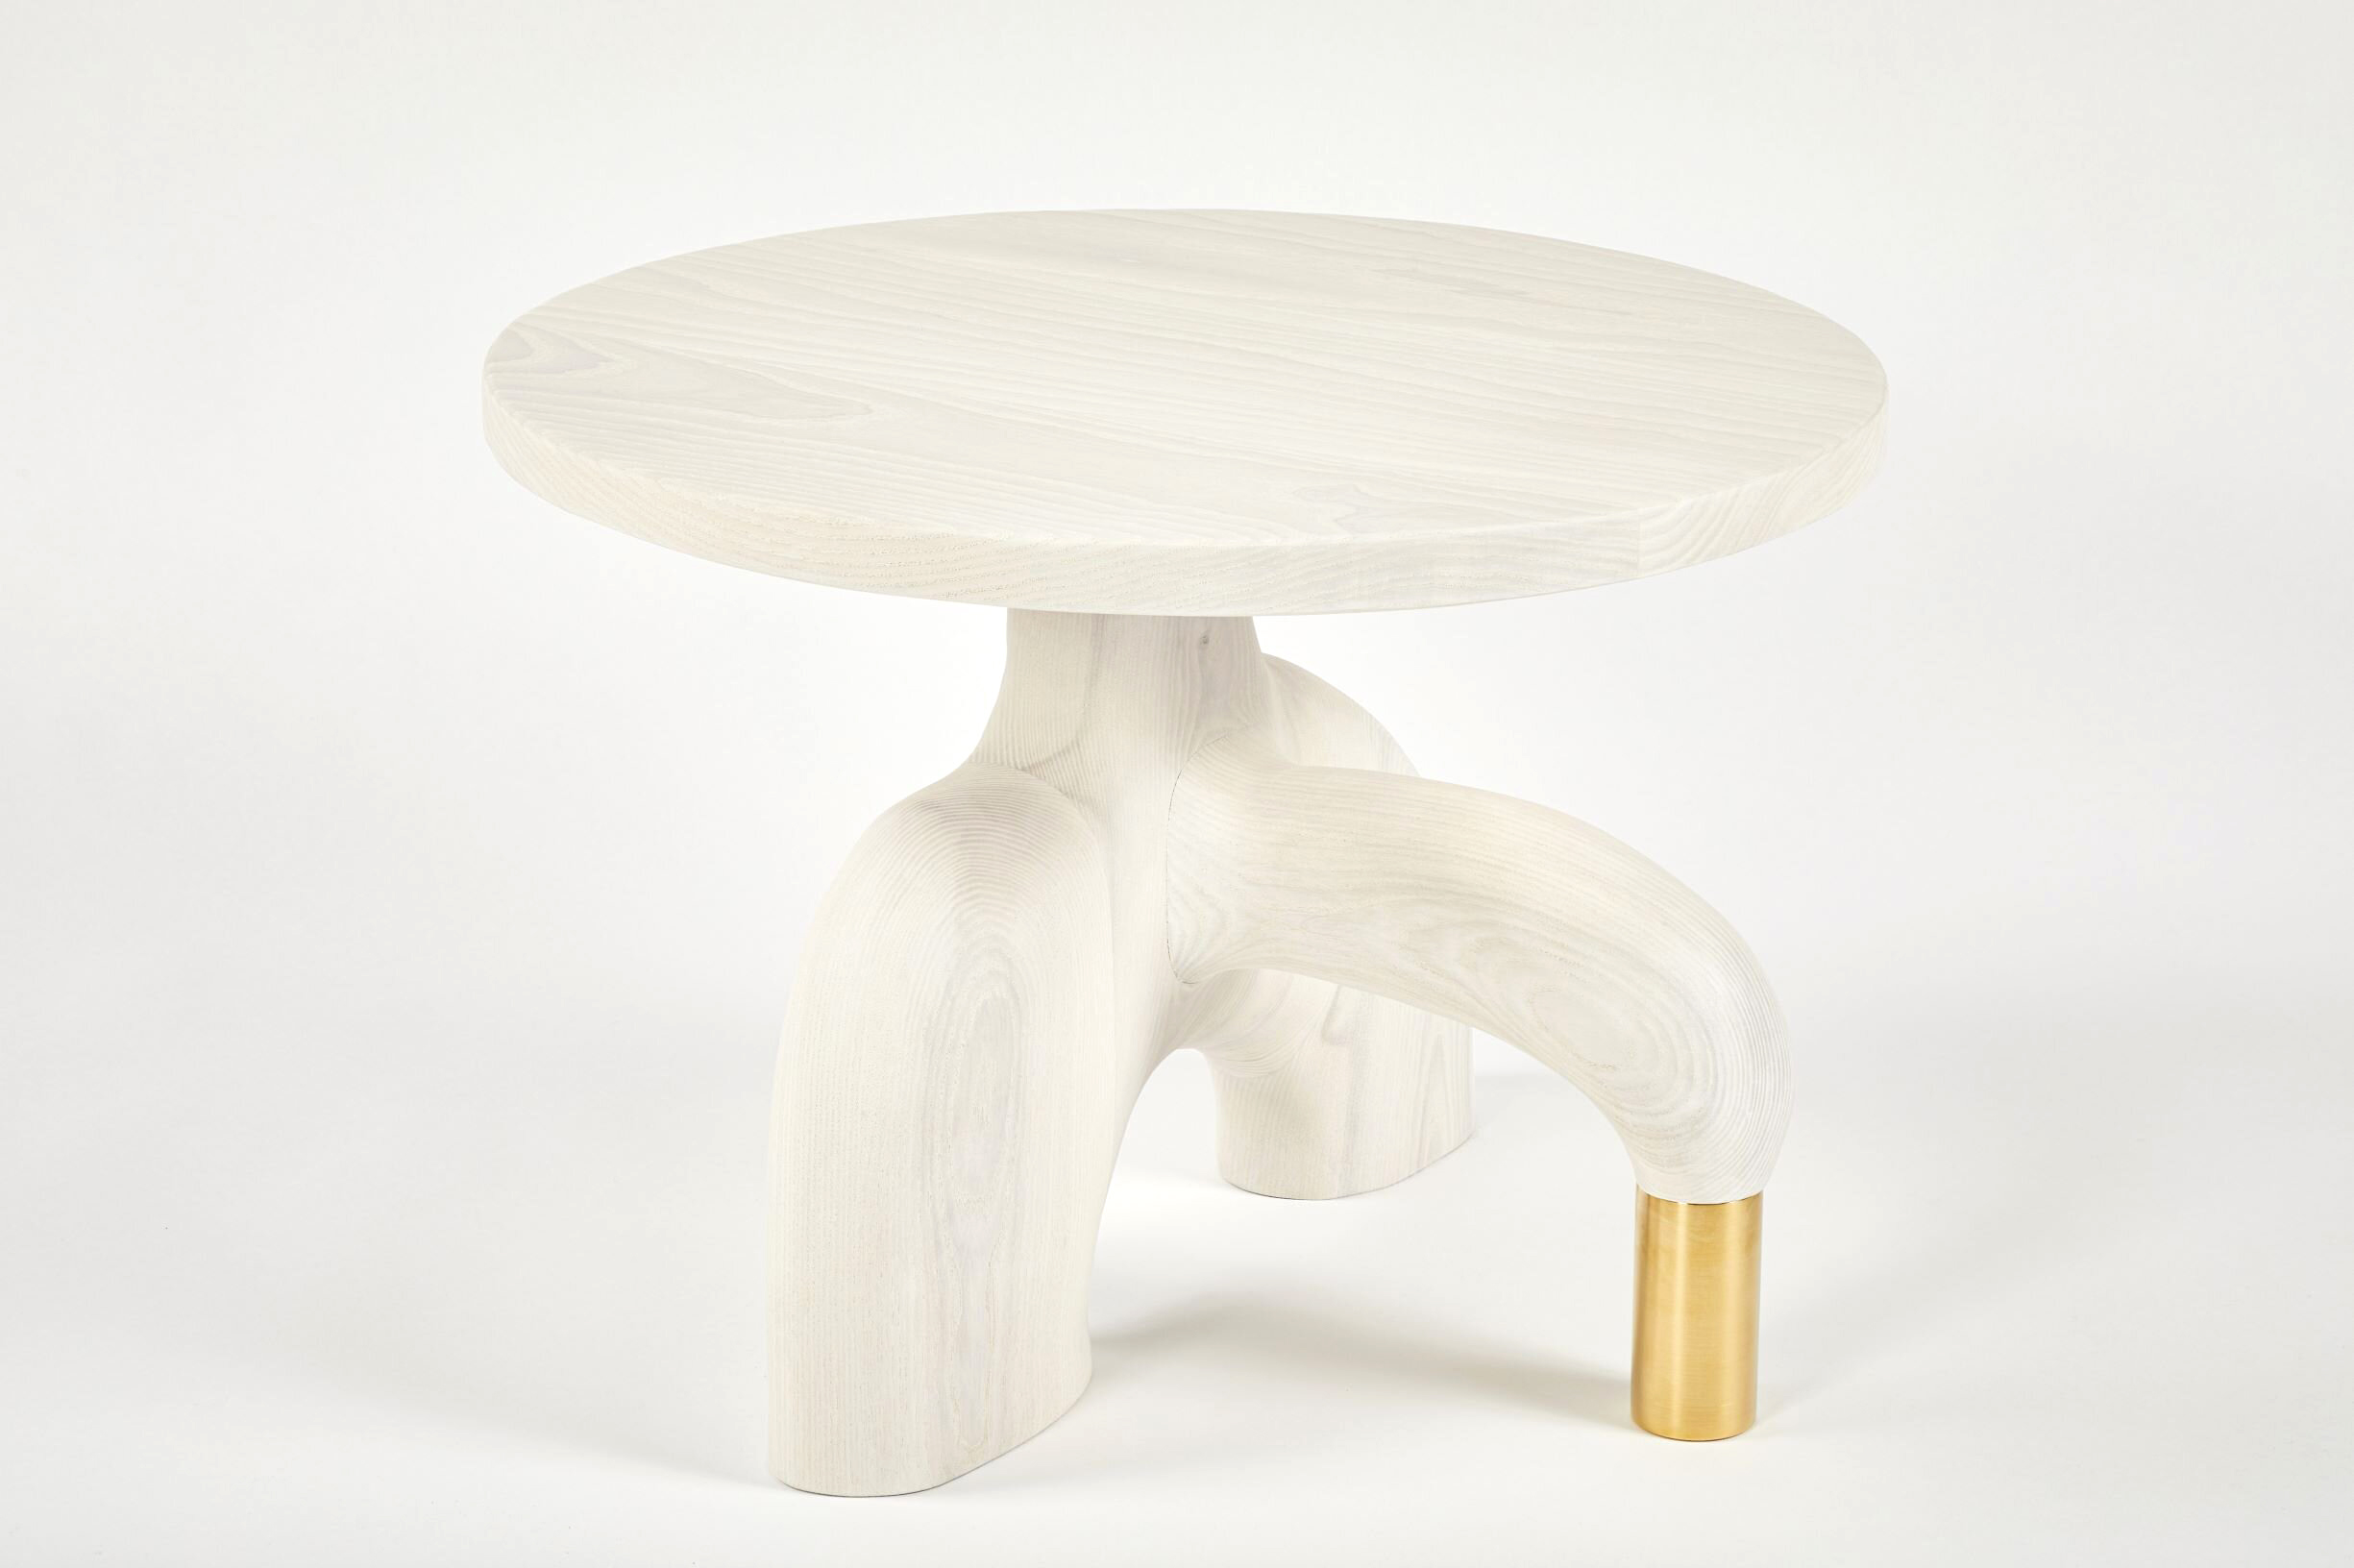 001M Sculptural Side Table by Casey McCafferty